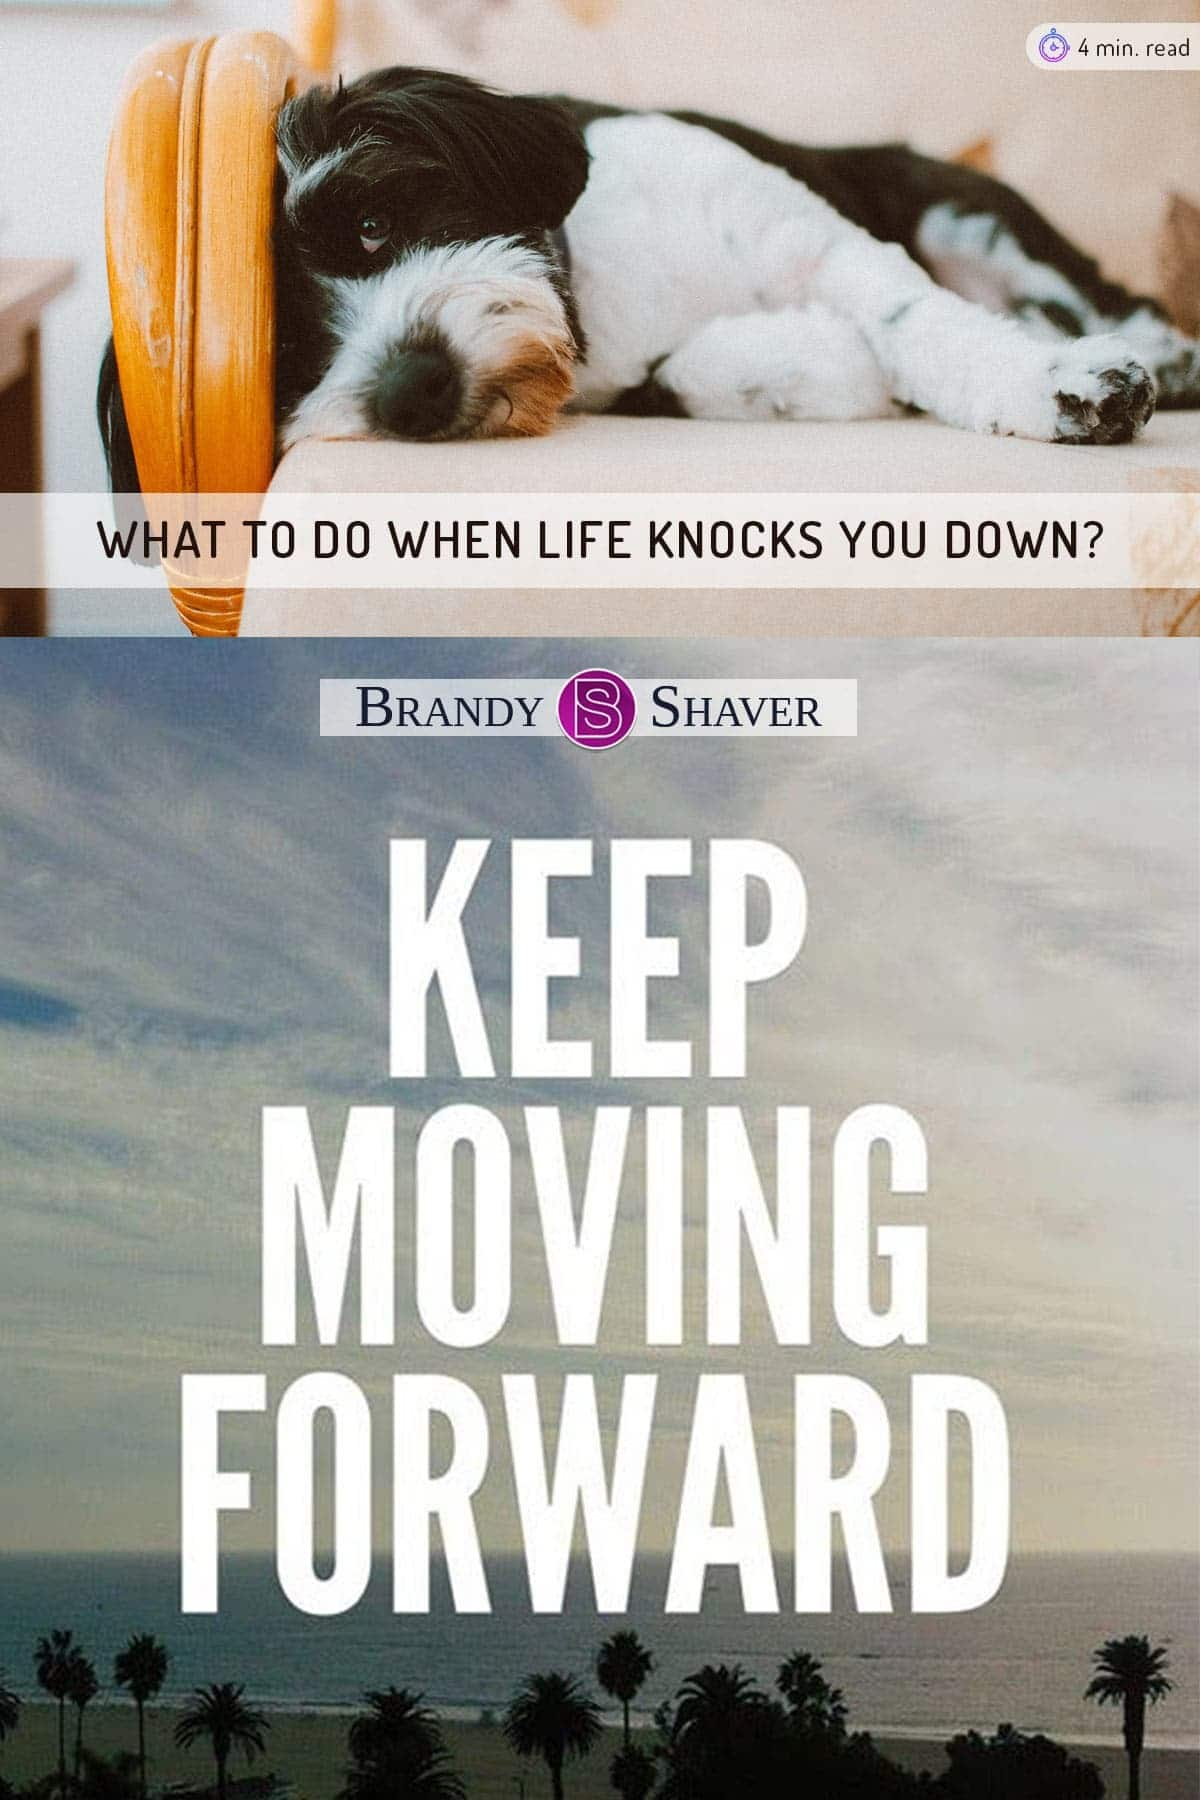 What to do when life knocks you down...keeping moving forward!